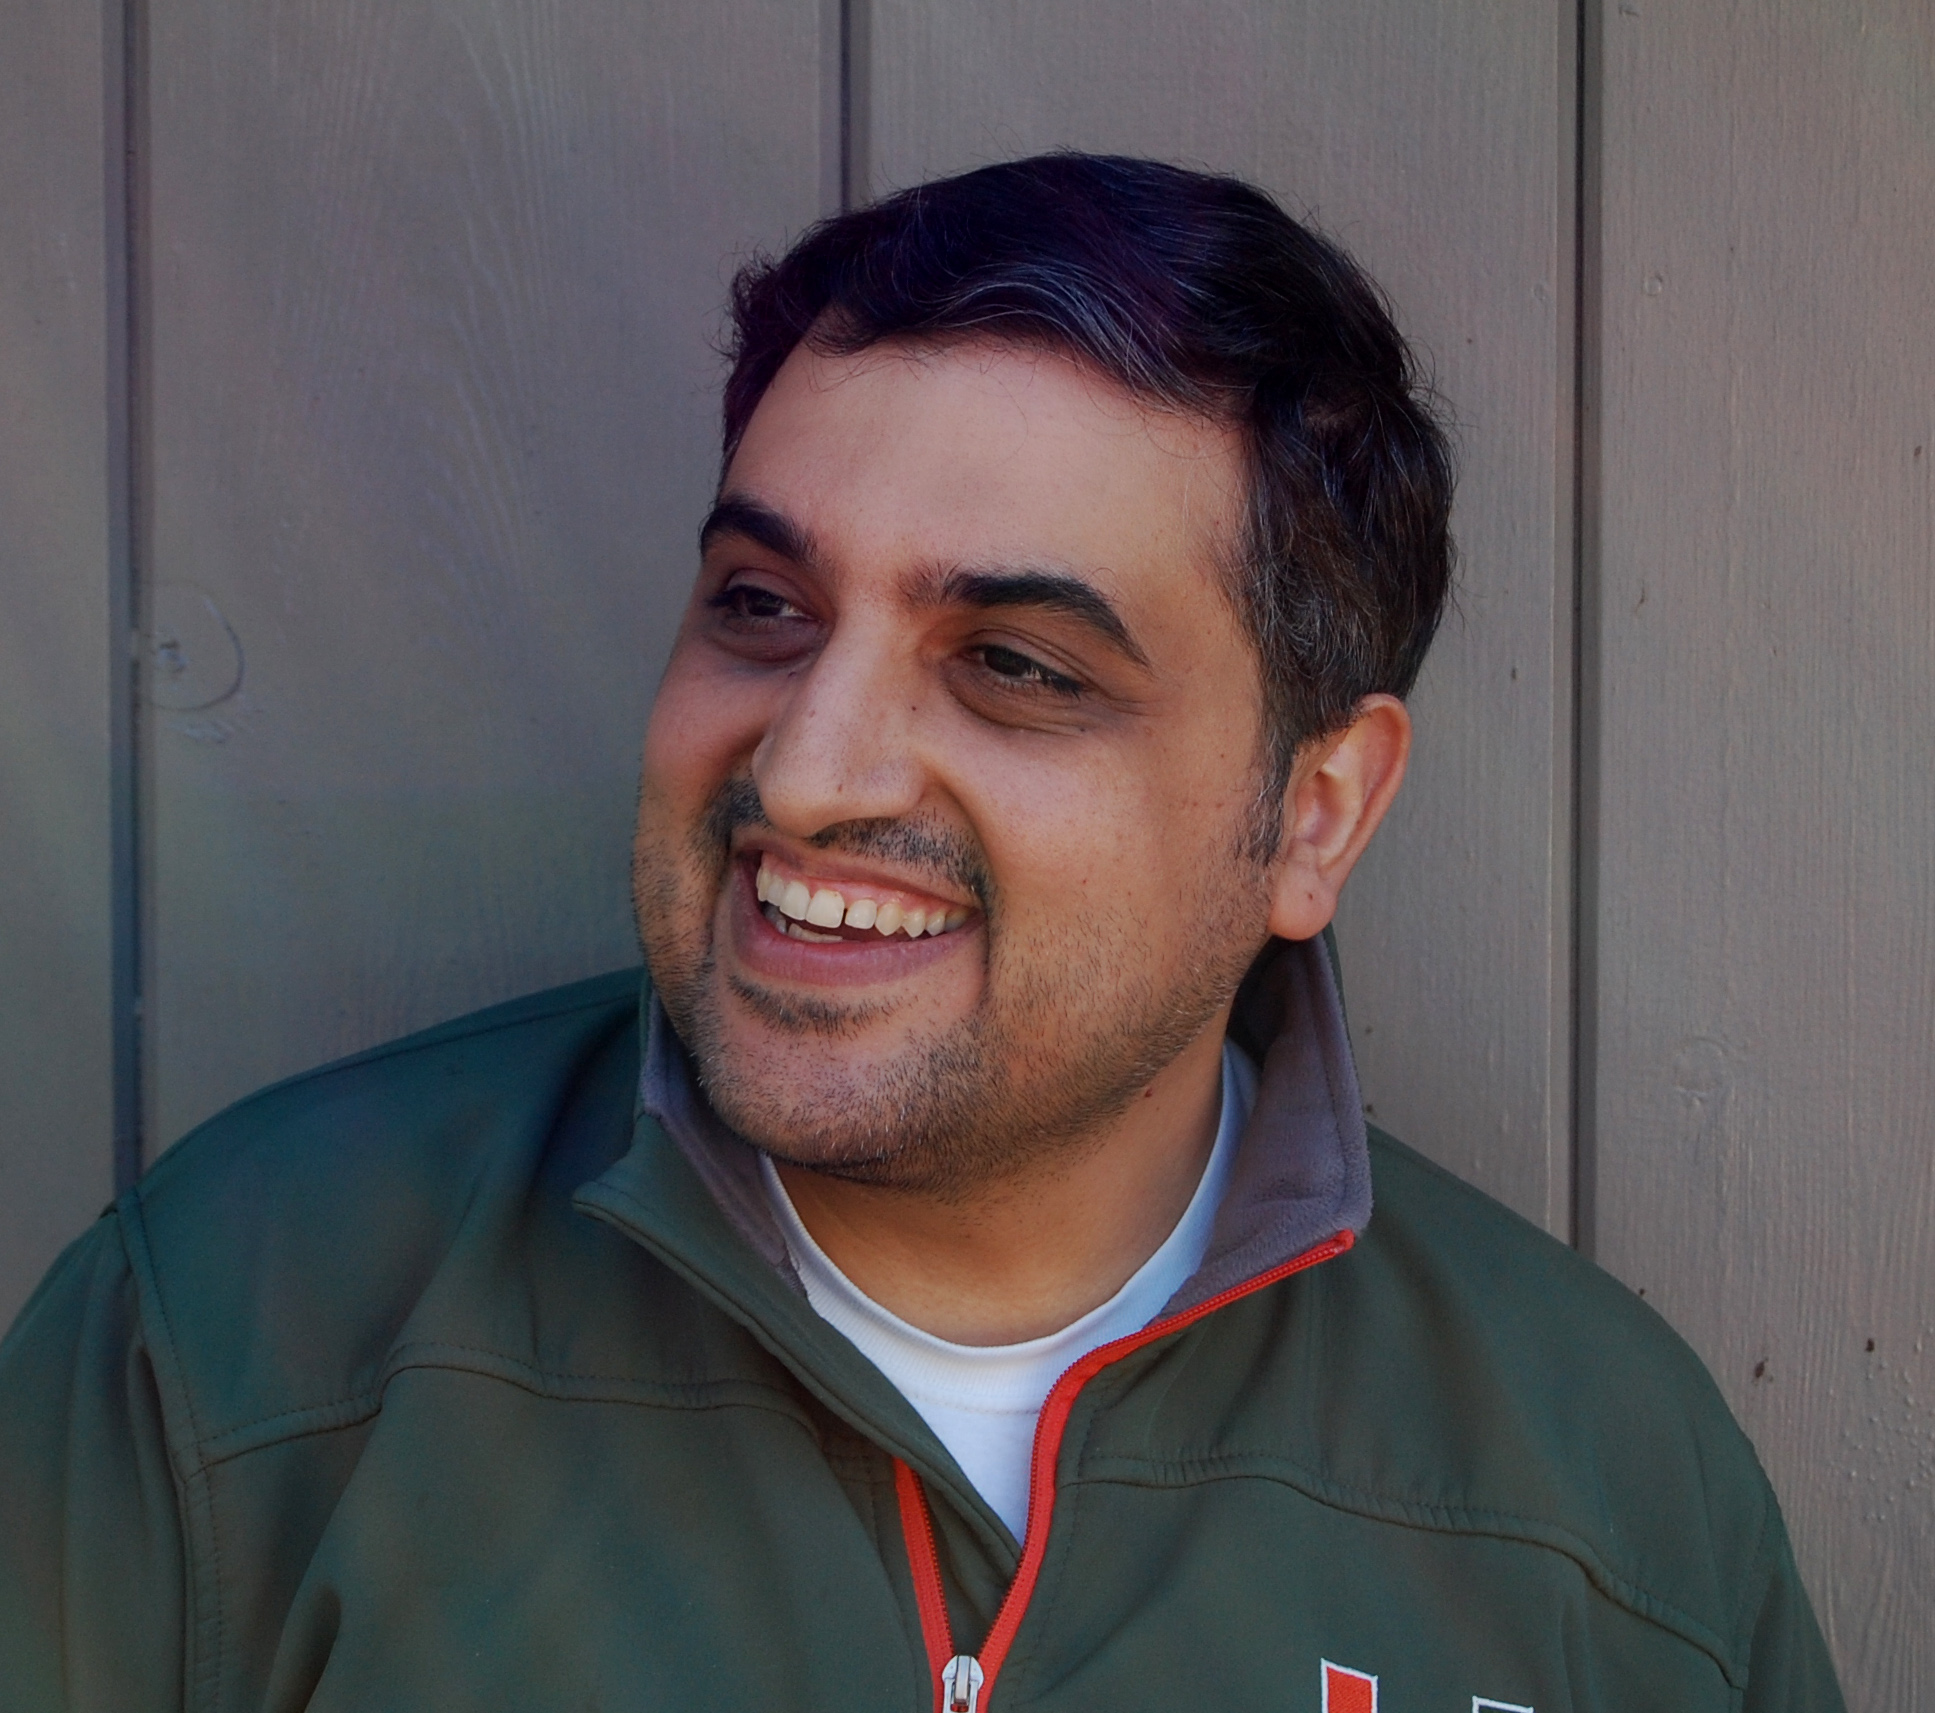 Meet Author Roben Farzad